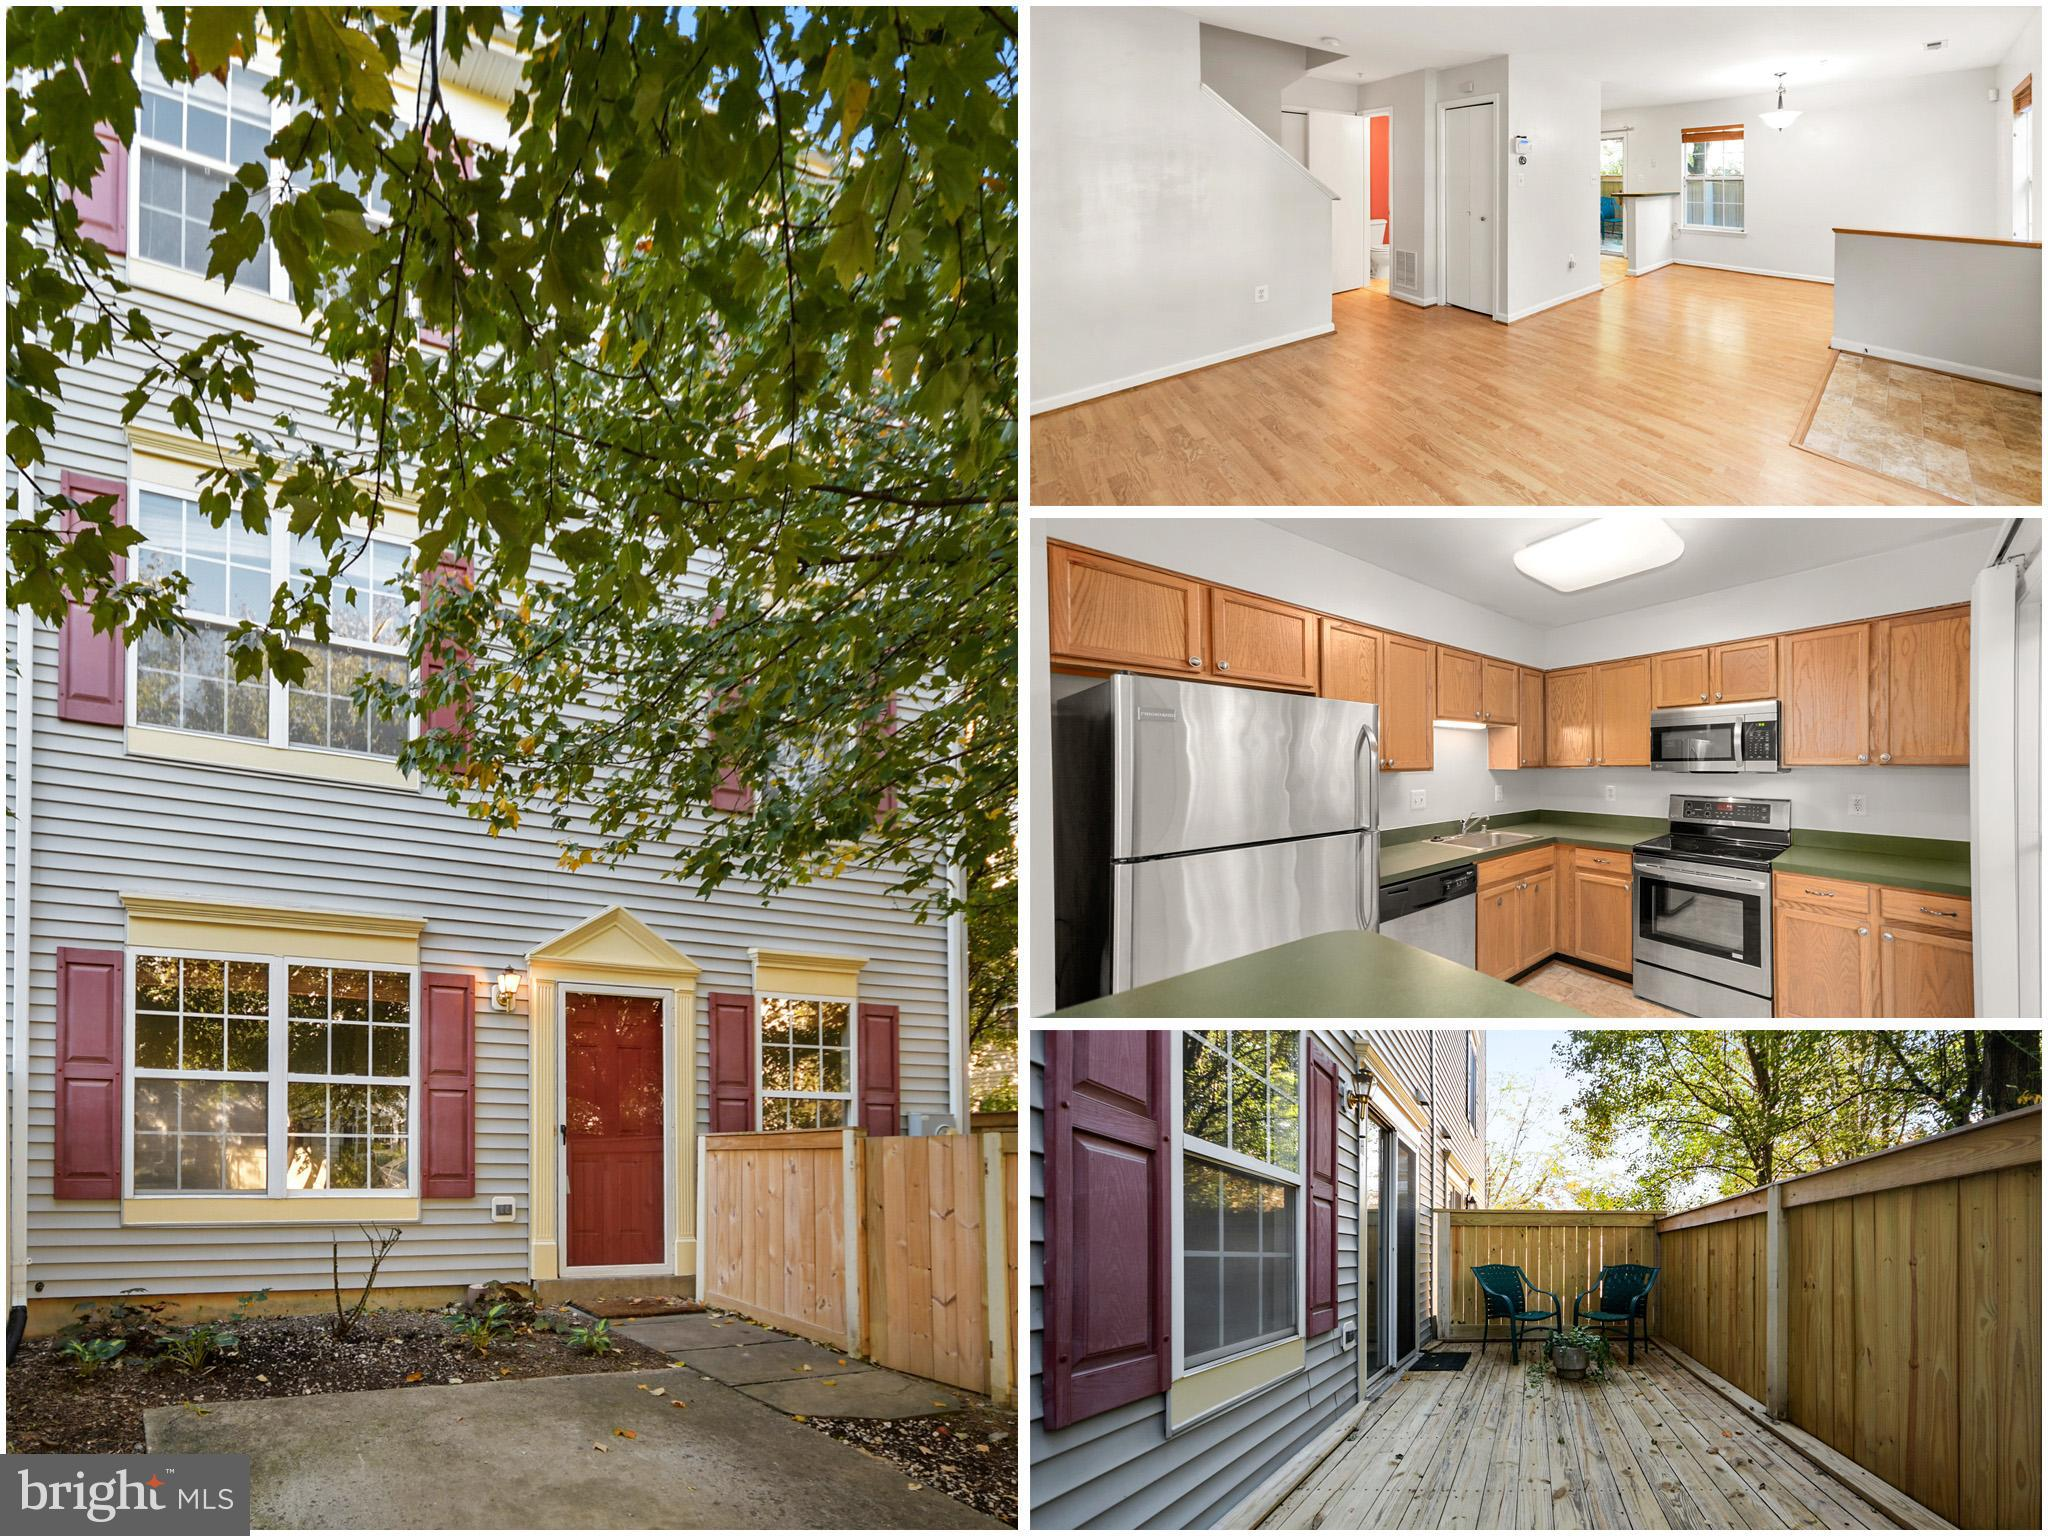 ***OPEN HOUSE, Sat. 10/23 1-3 pm & Sun. 10/24  1-3 pm!***  This end unit townhouse is both affordabl